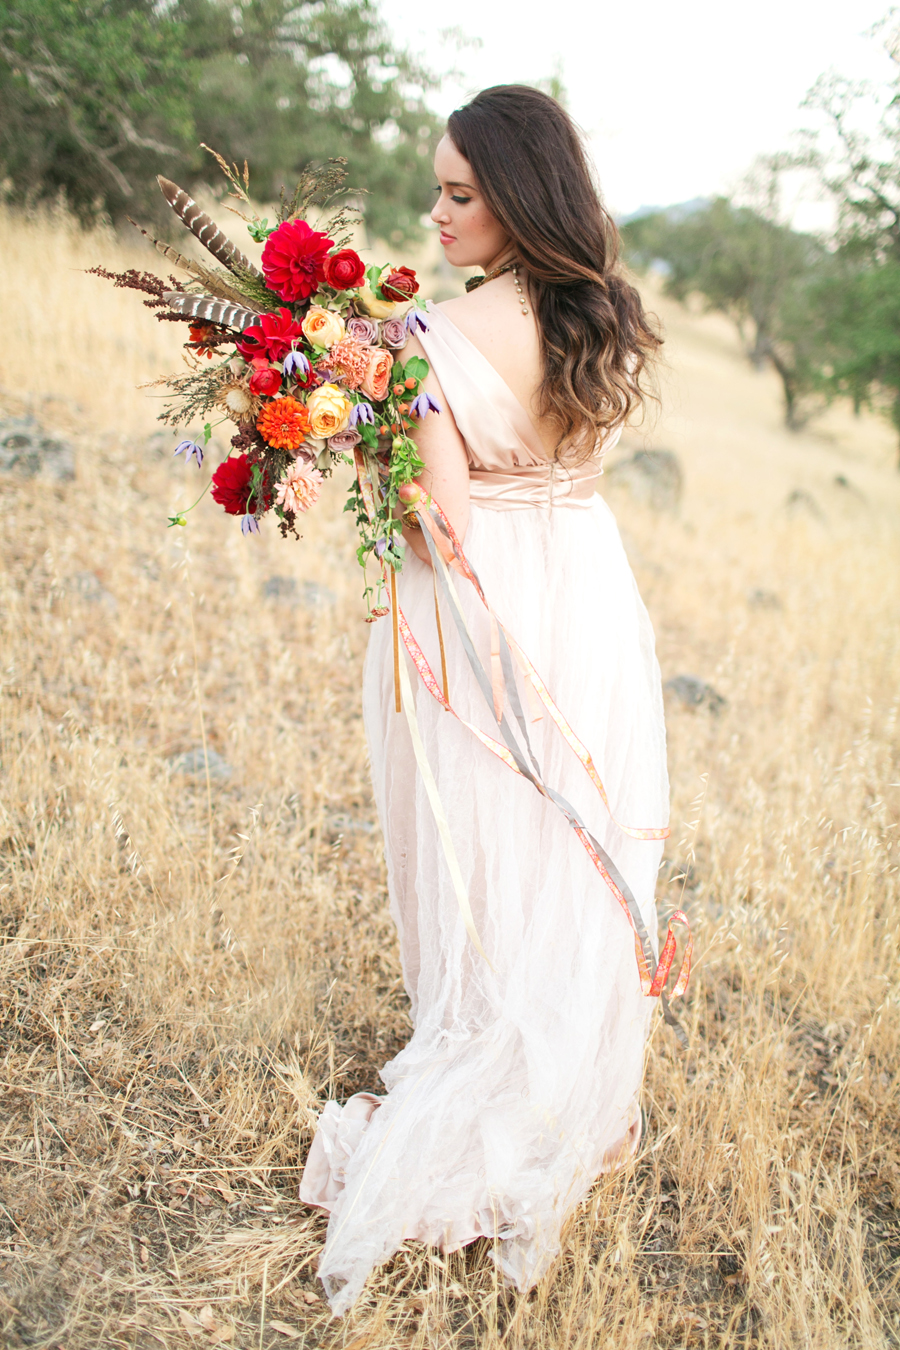 Norcal Weddings - Sarah Tamagni Photography